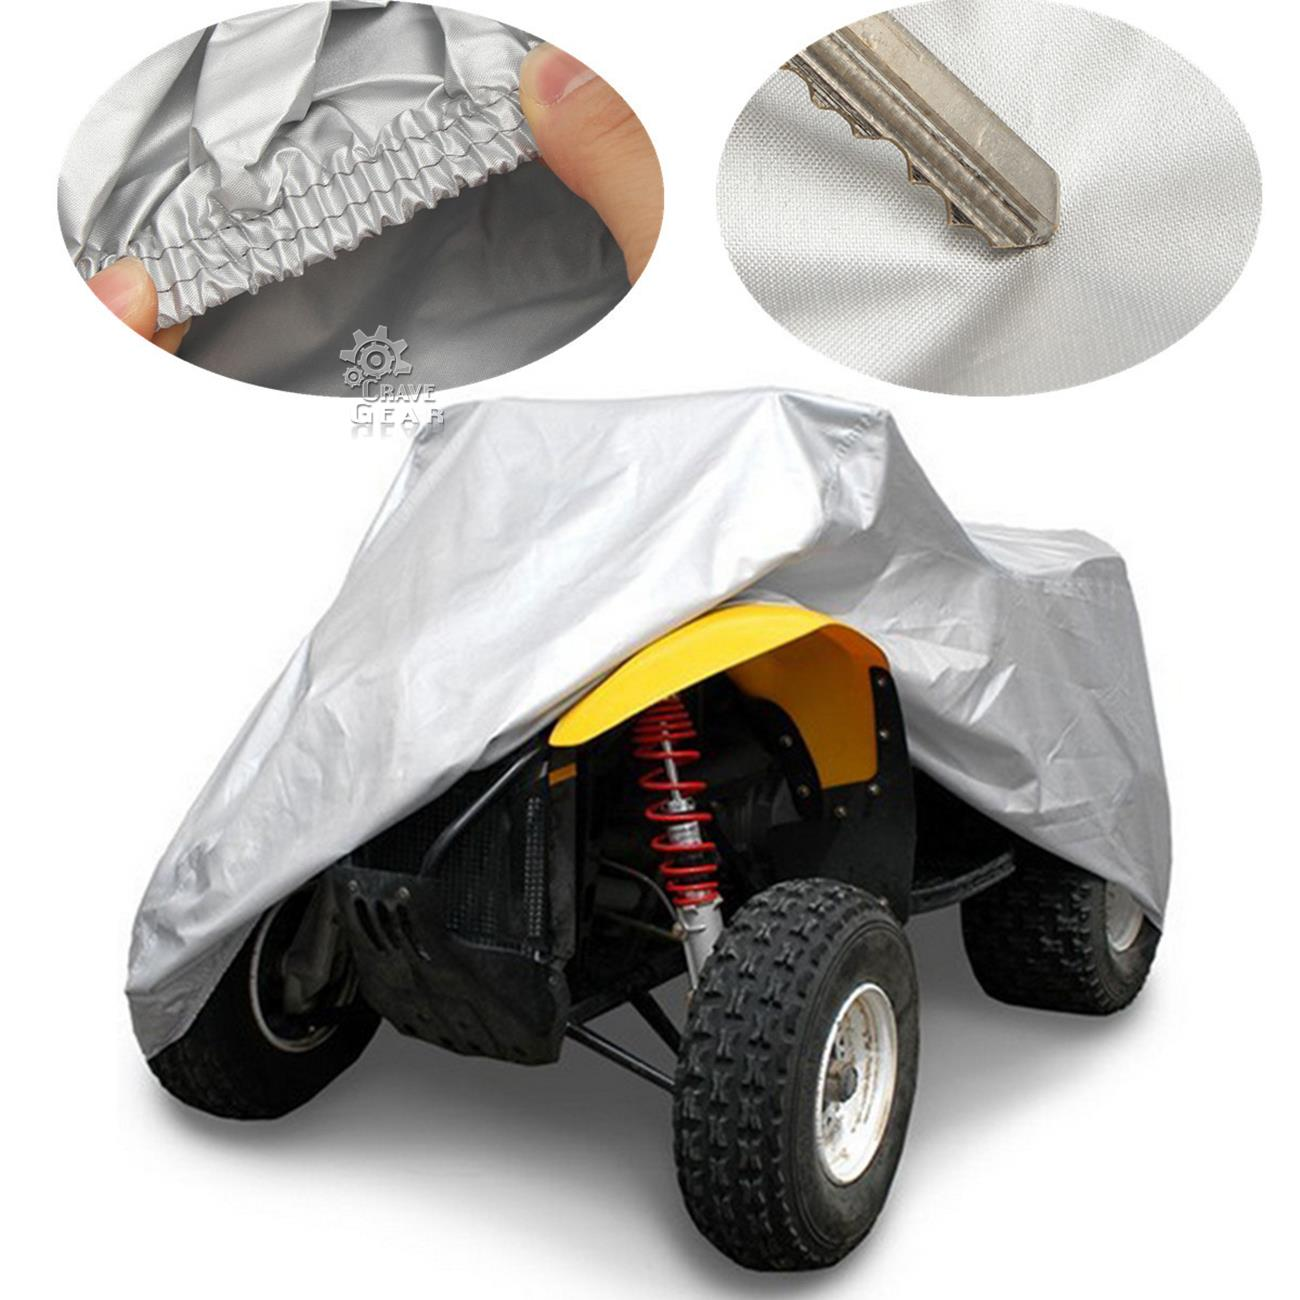 Silver Xxxl Atv Outdoor Waterproof Cover For Kawasaki Brute Force